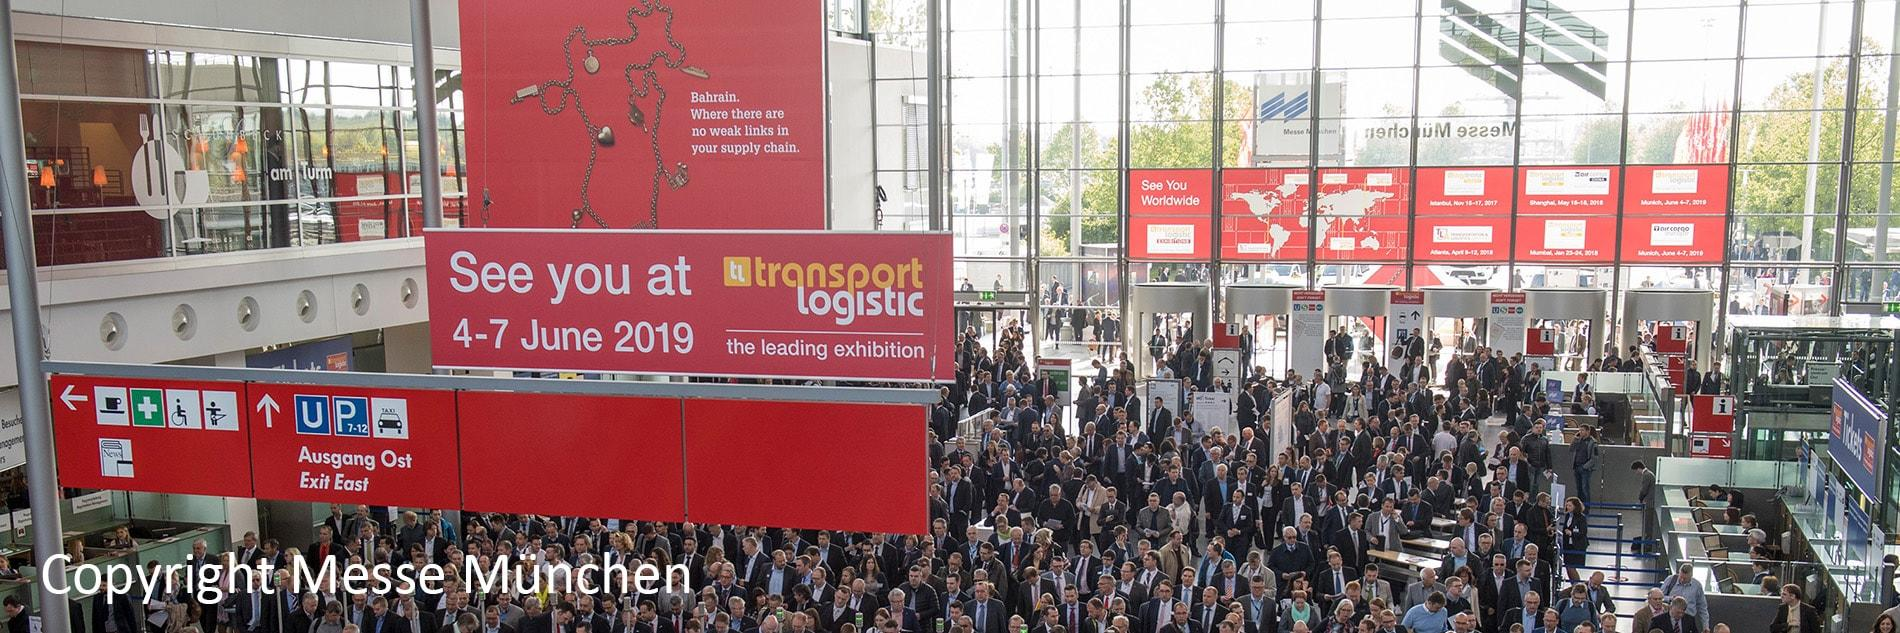 Transport Logistic Messe München